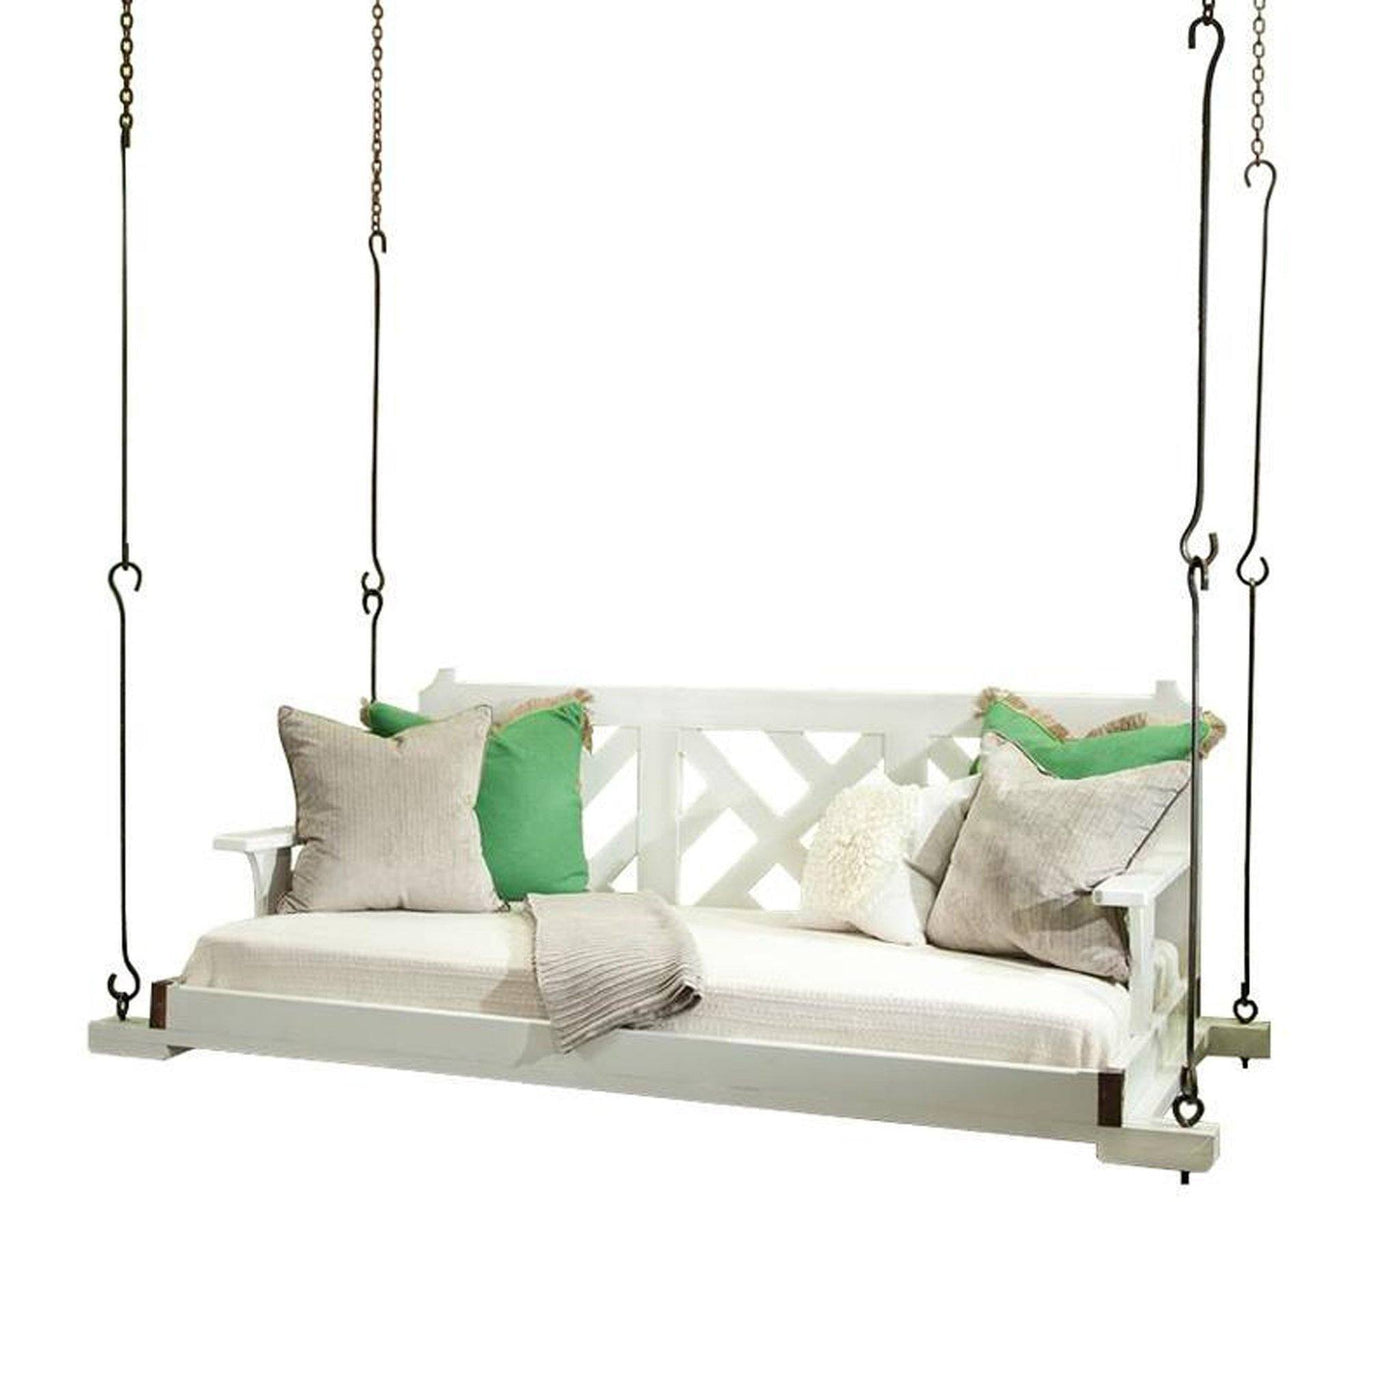 Swinging Day Bed With Back Sku Mdlcof10cddw Our Boat House